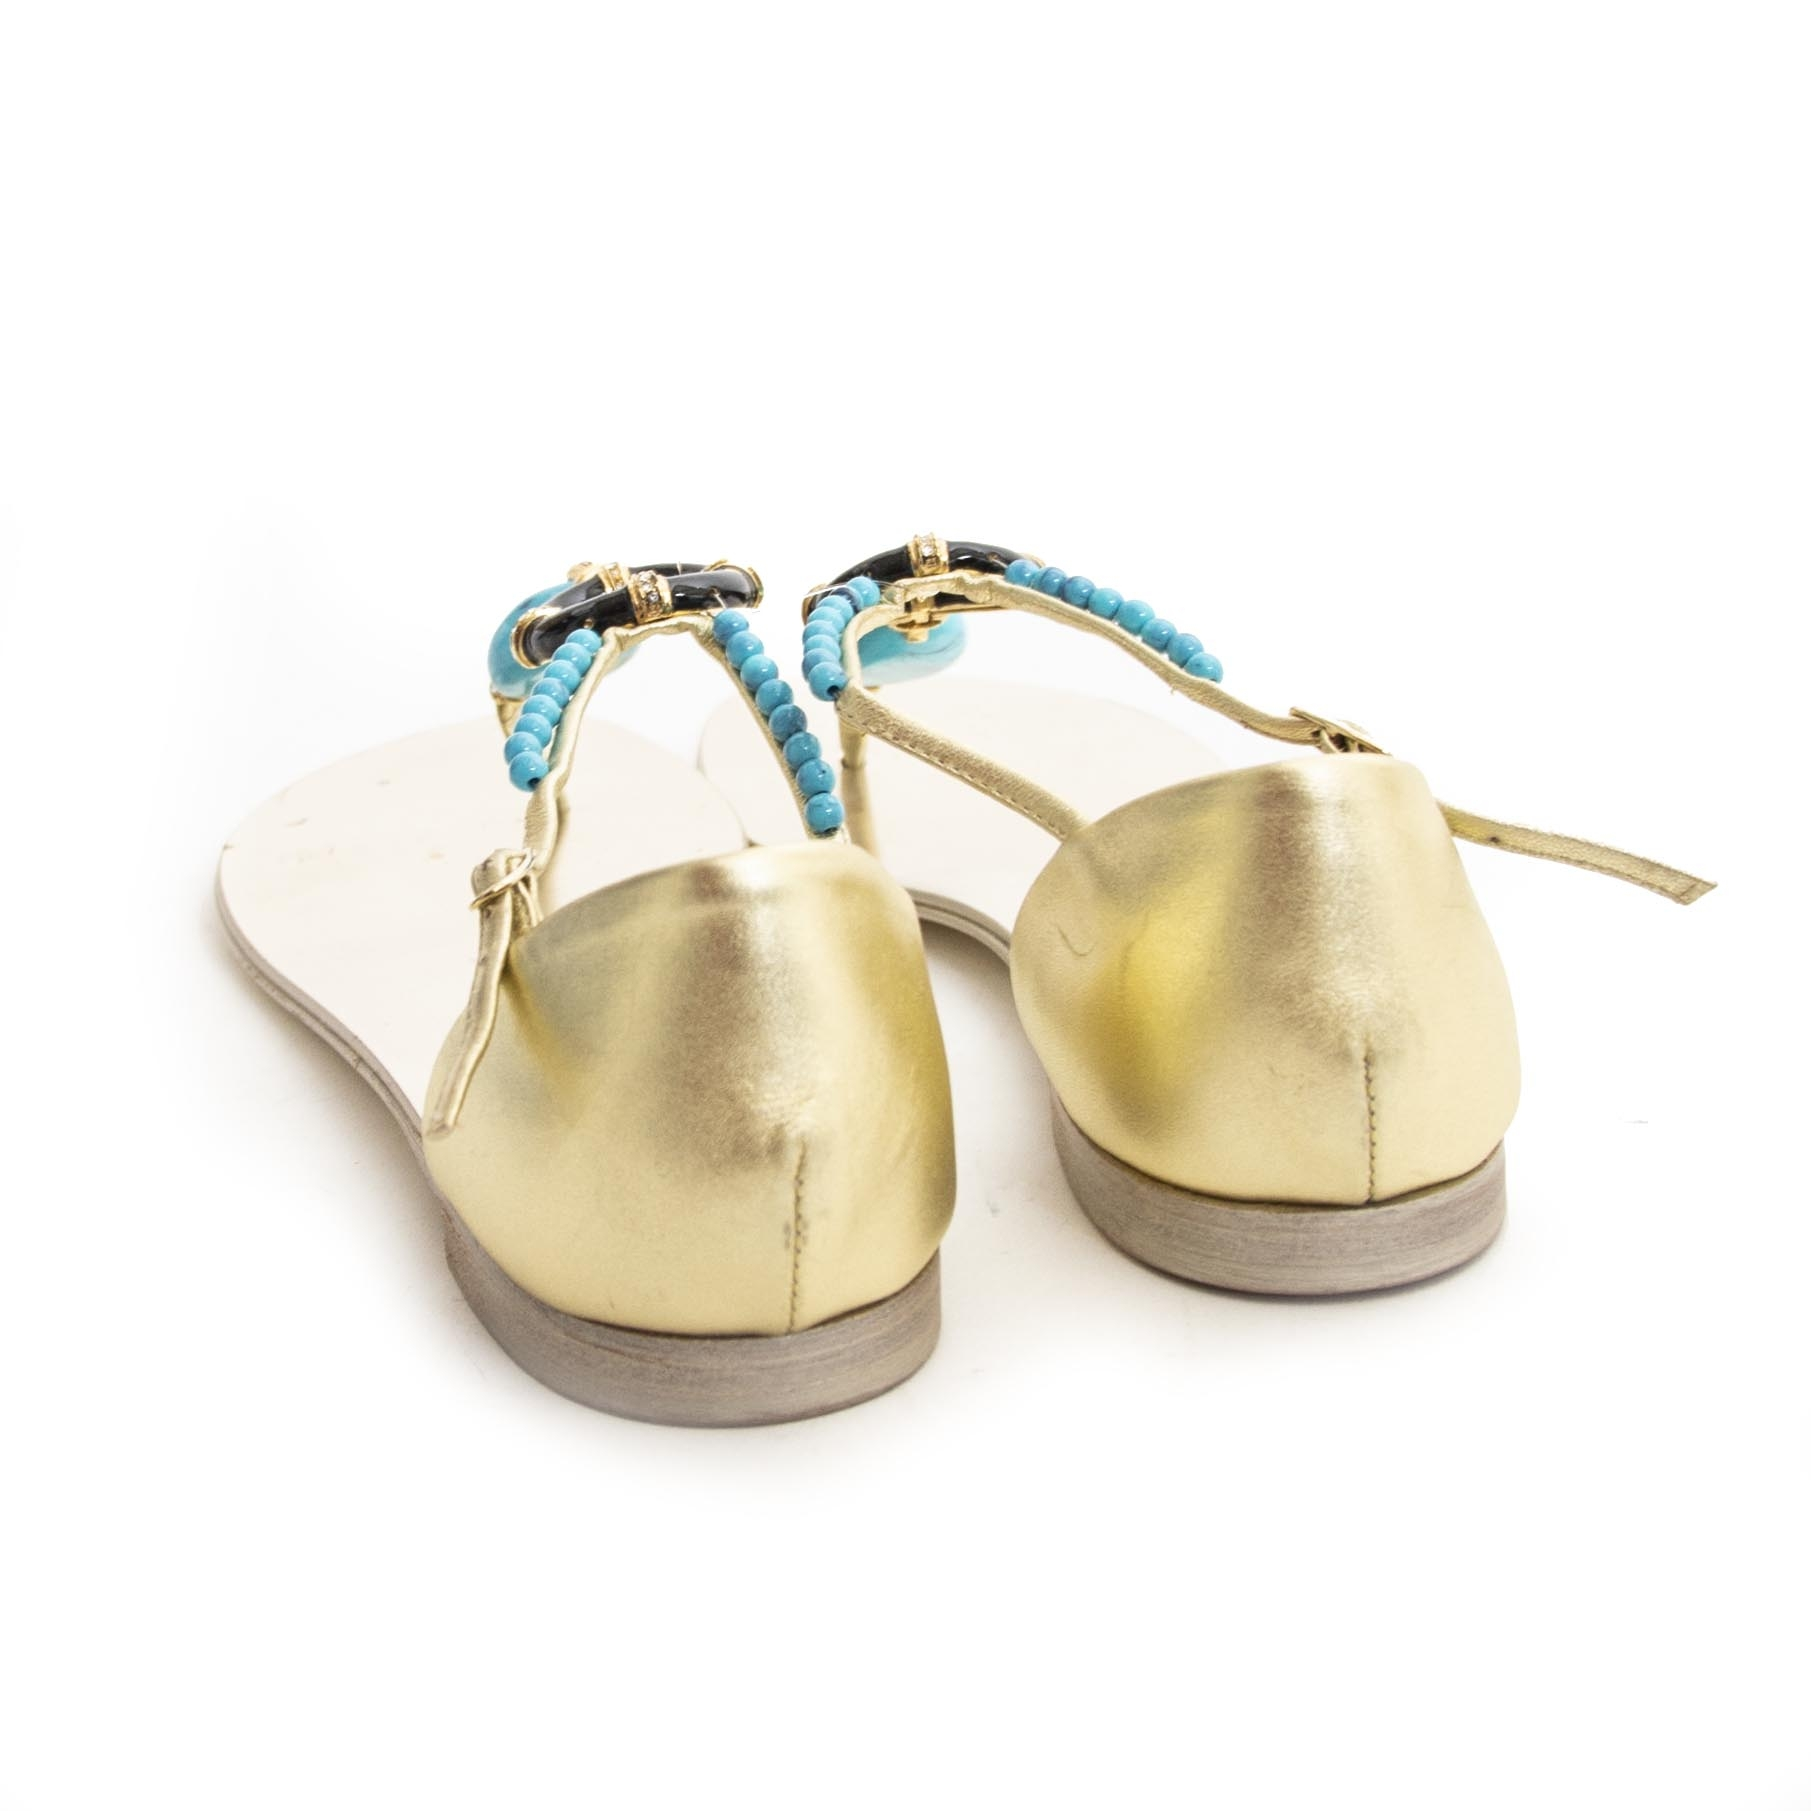 Giuseppe Zanotti Gold Sandals - 38 For the best price at LabelLov. Pour le meilleur prix à LabelLOV. Voor de beste prijs bij LabelLOV.